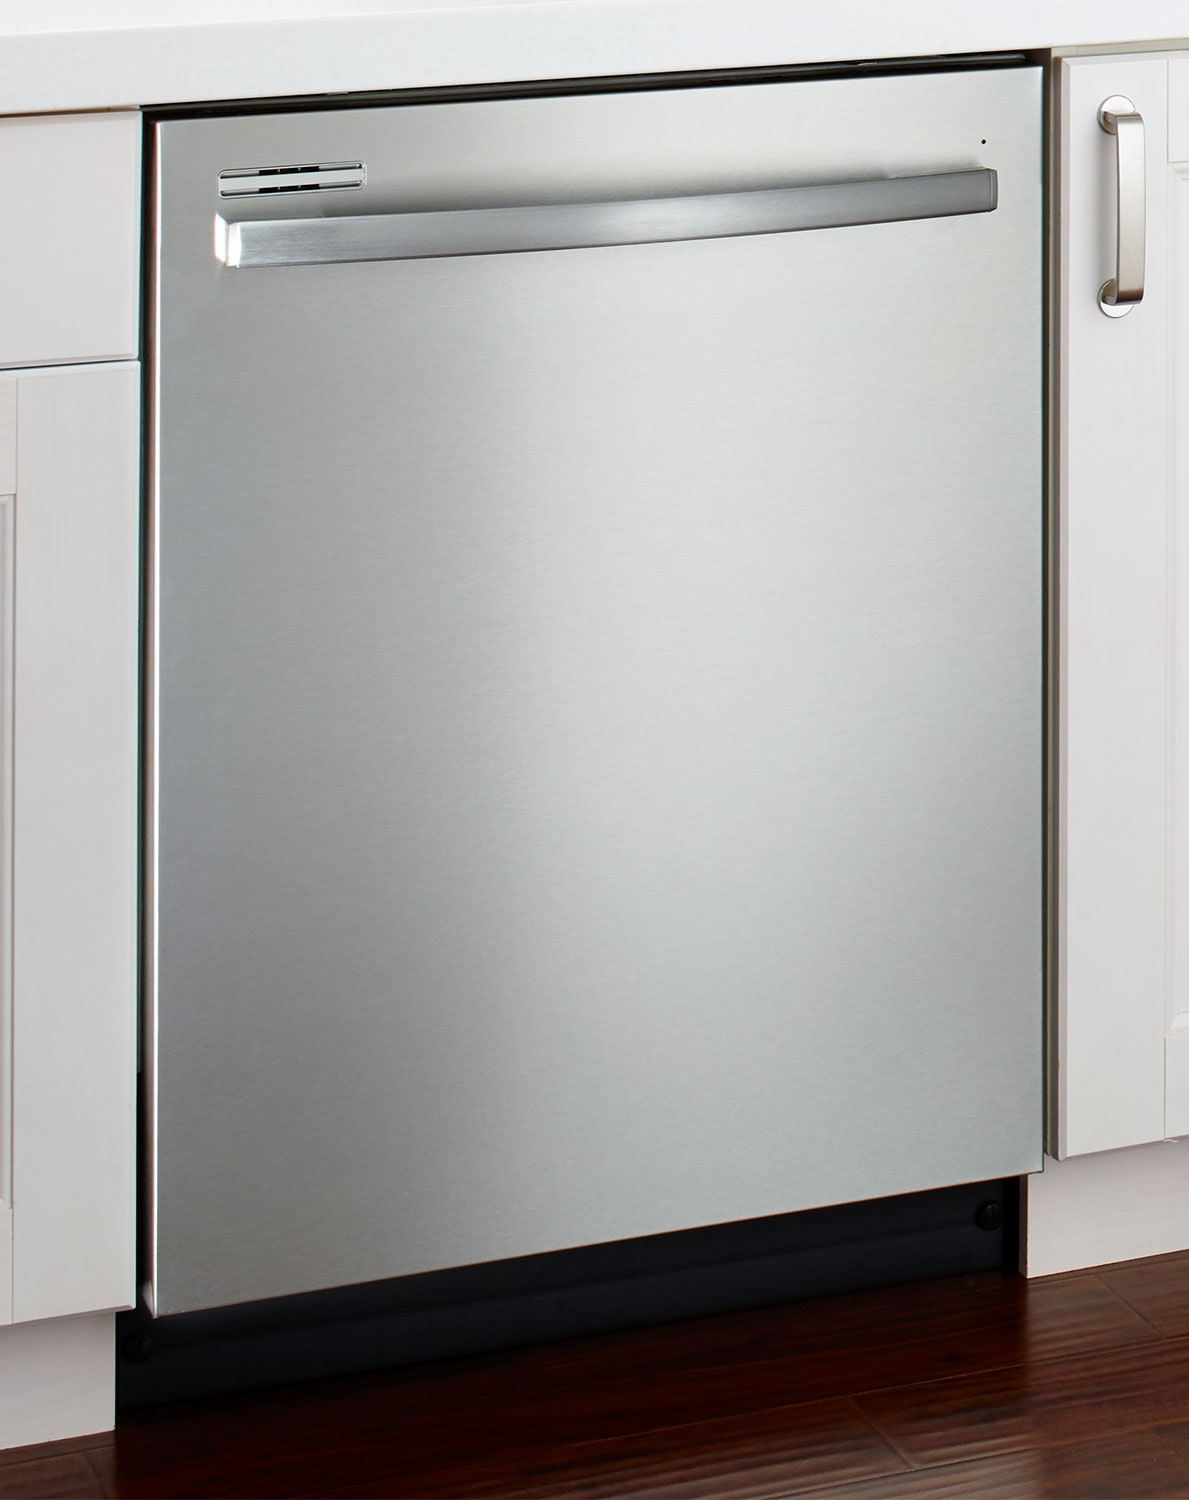 "Amana 24"" Stainless Steel Dishwasher - ADB1500ADS"